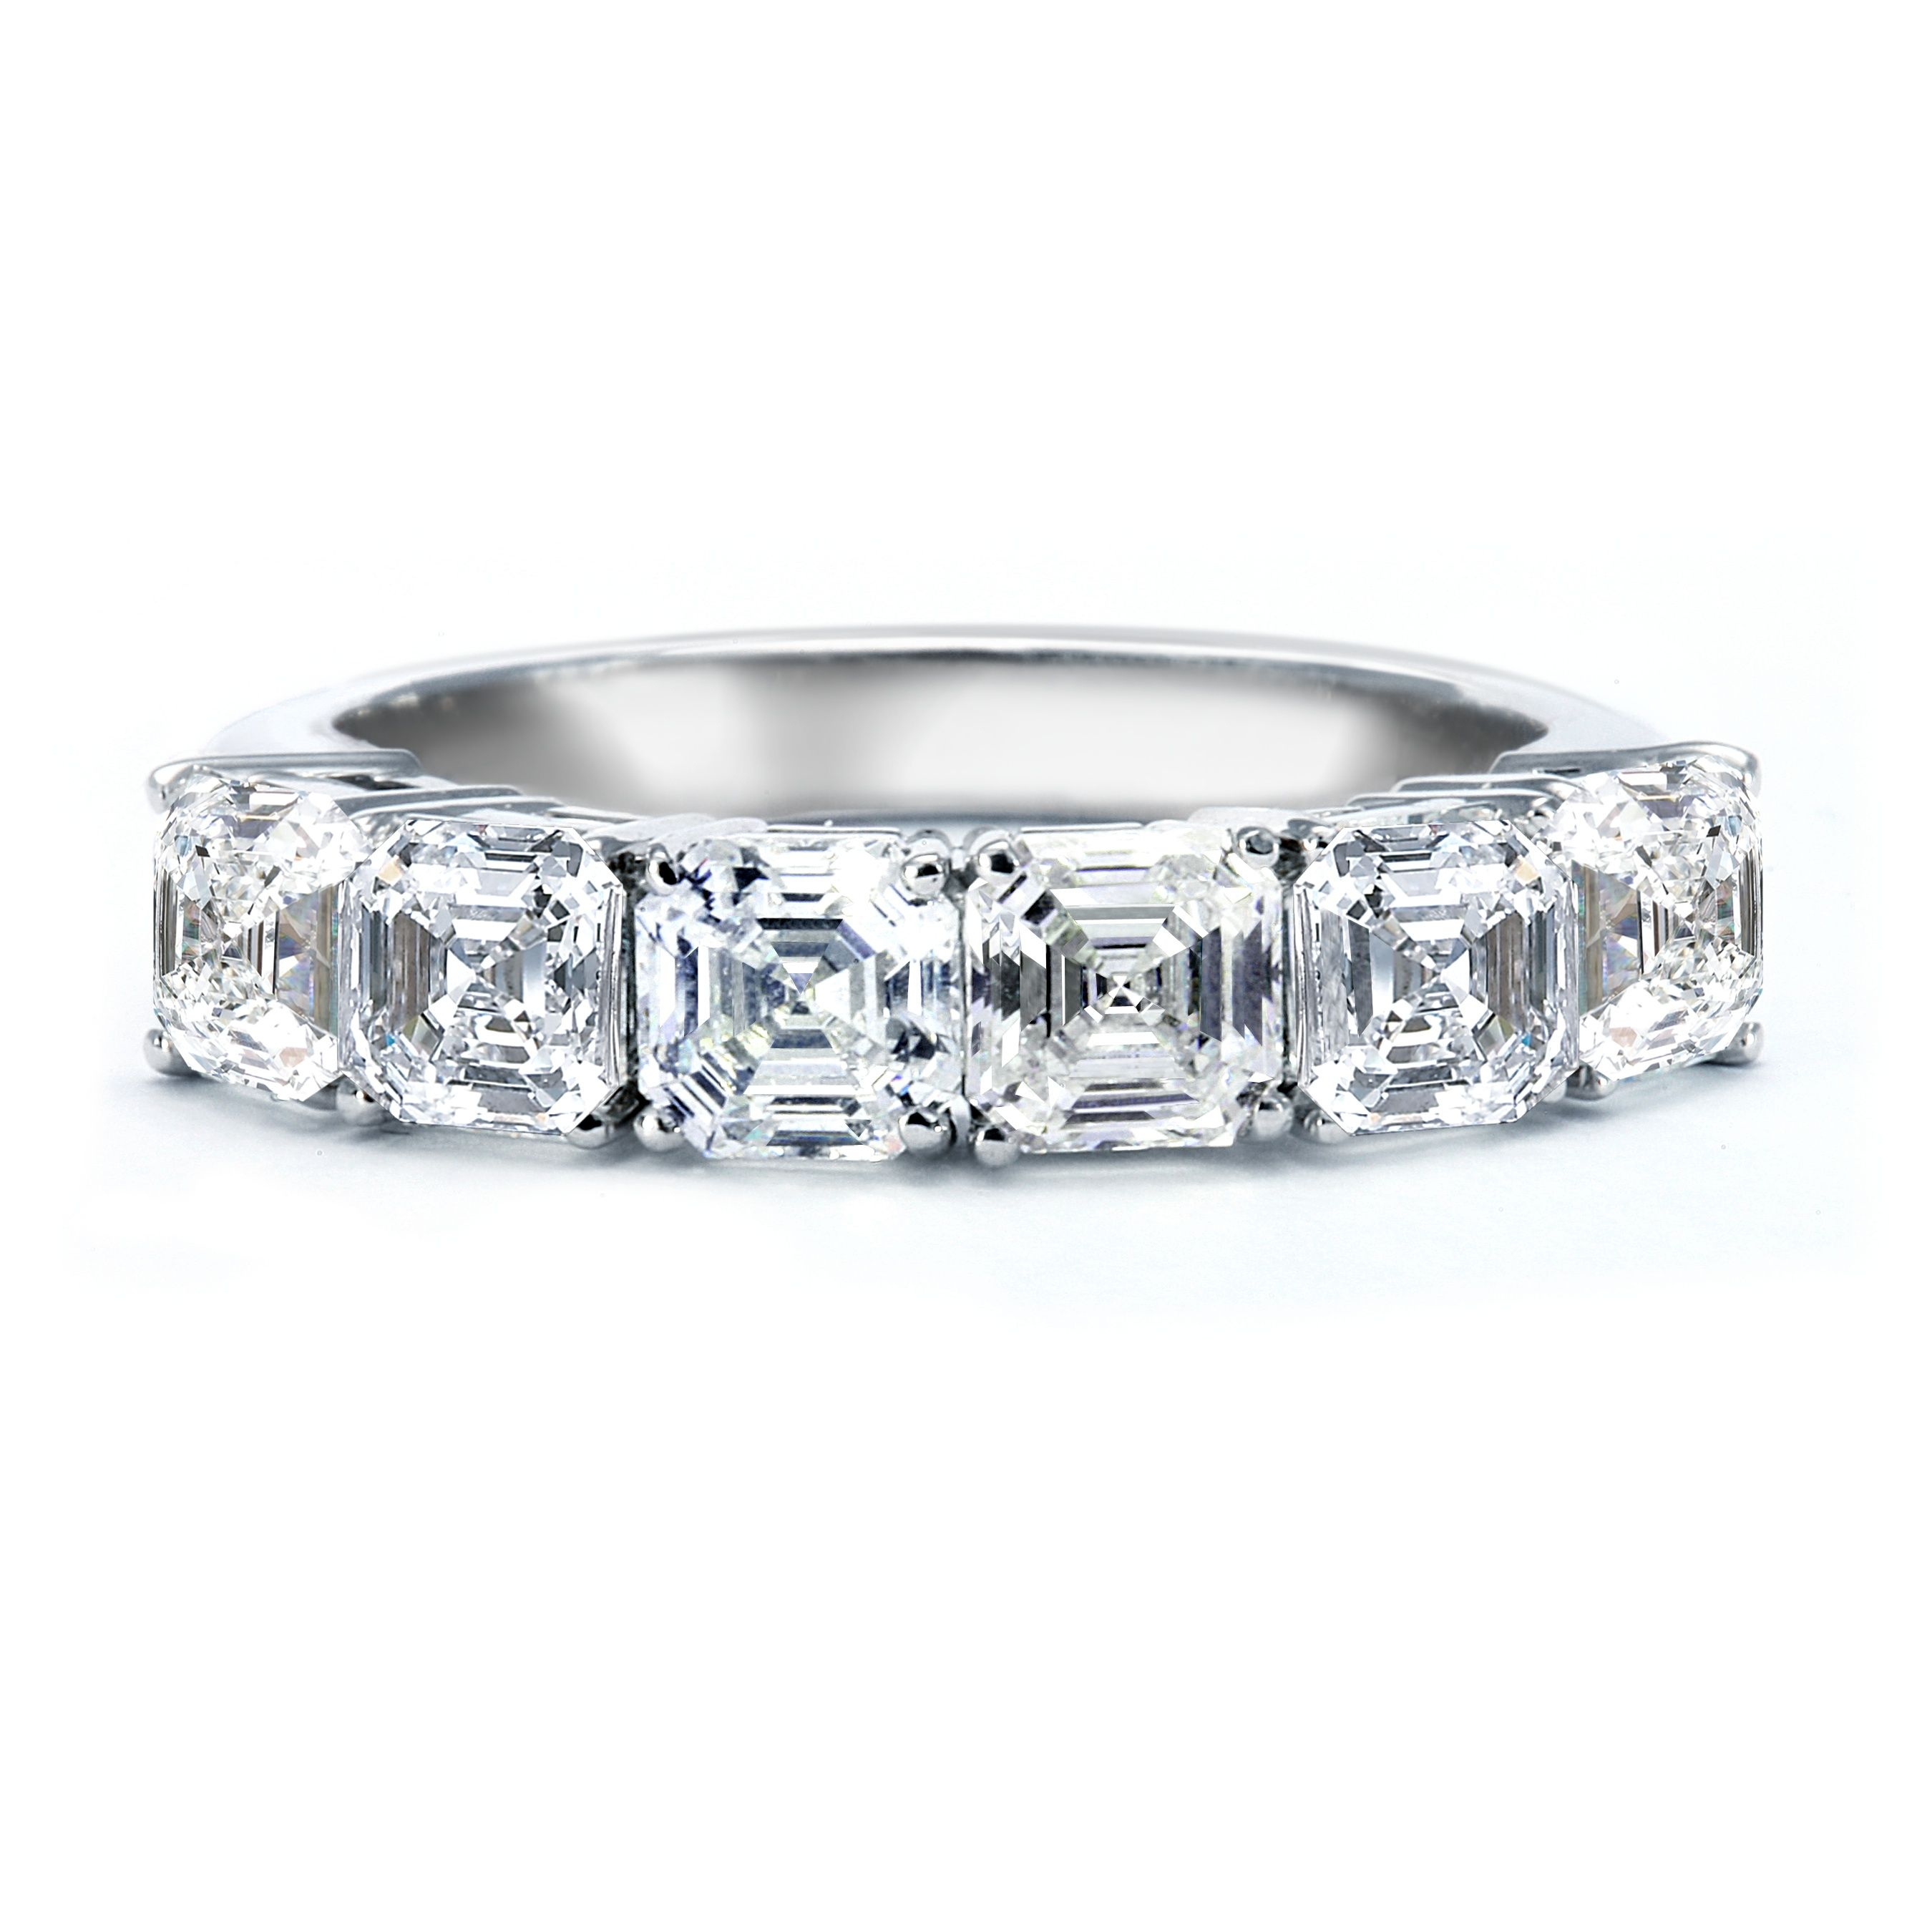 Asscher diamond wedding band